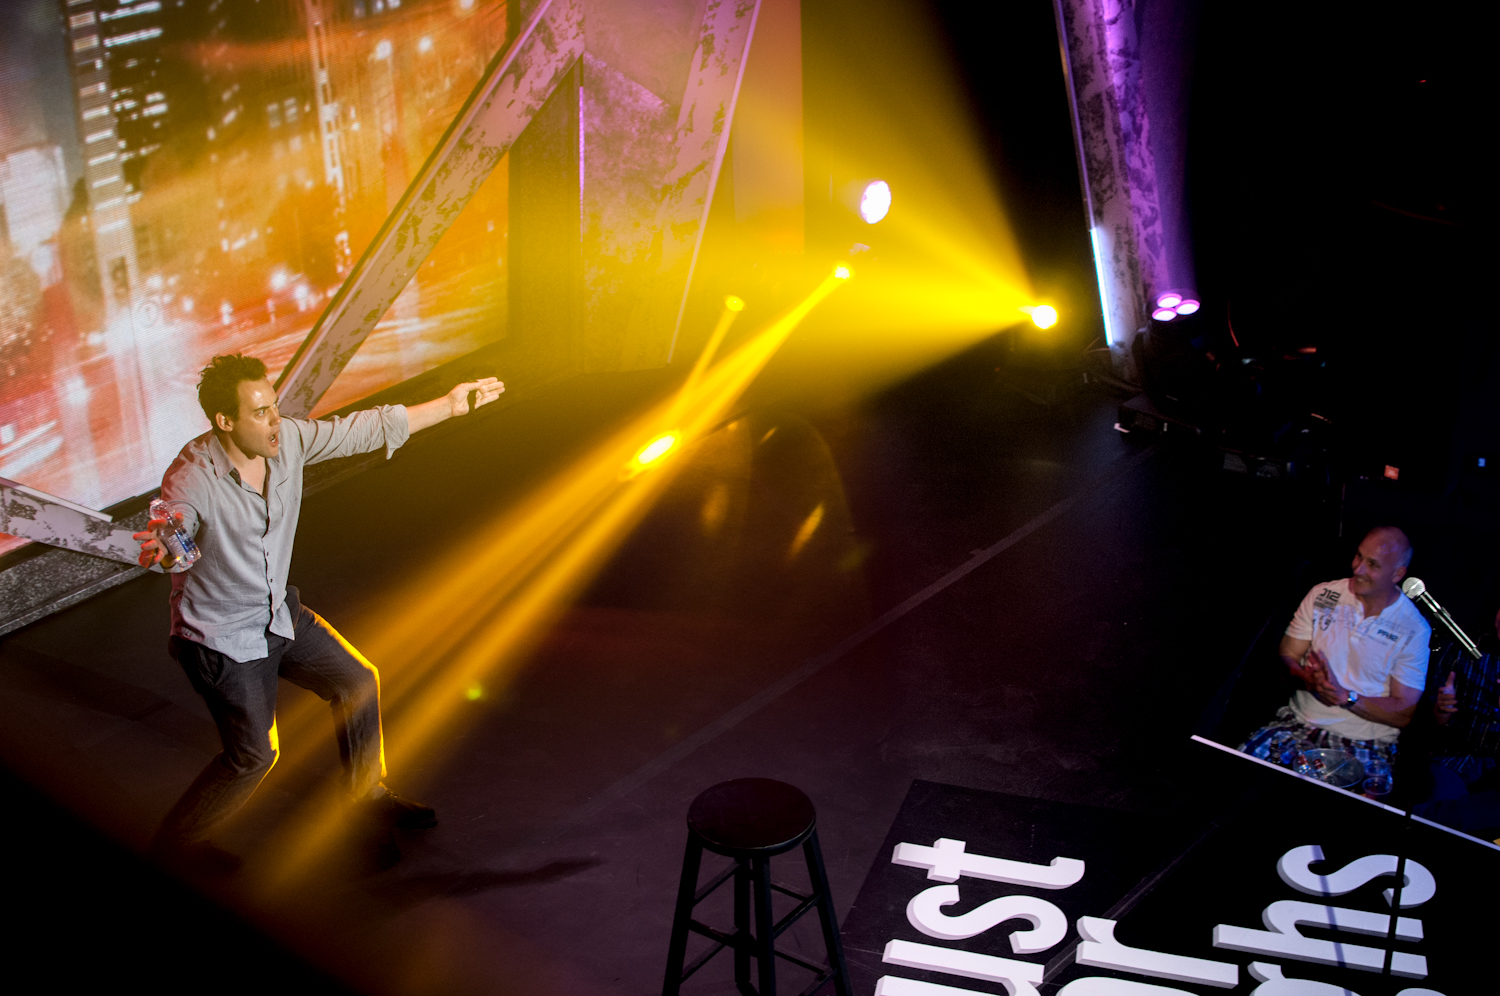 Orny Adams, Just For Laughs: Talk of the Fest, Montreal 2012